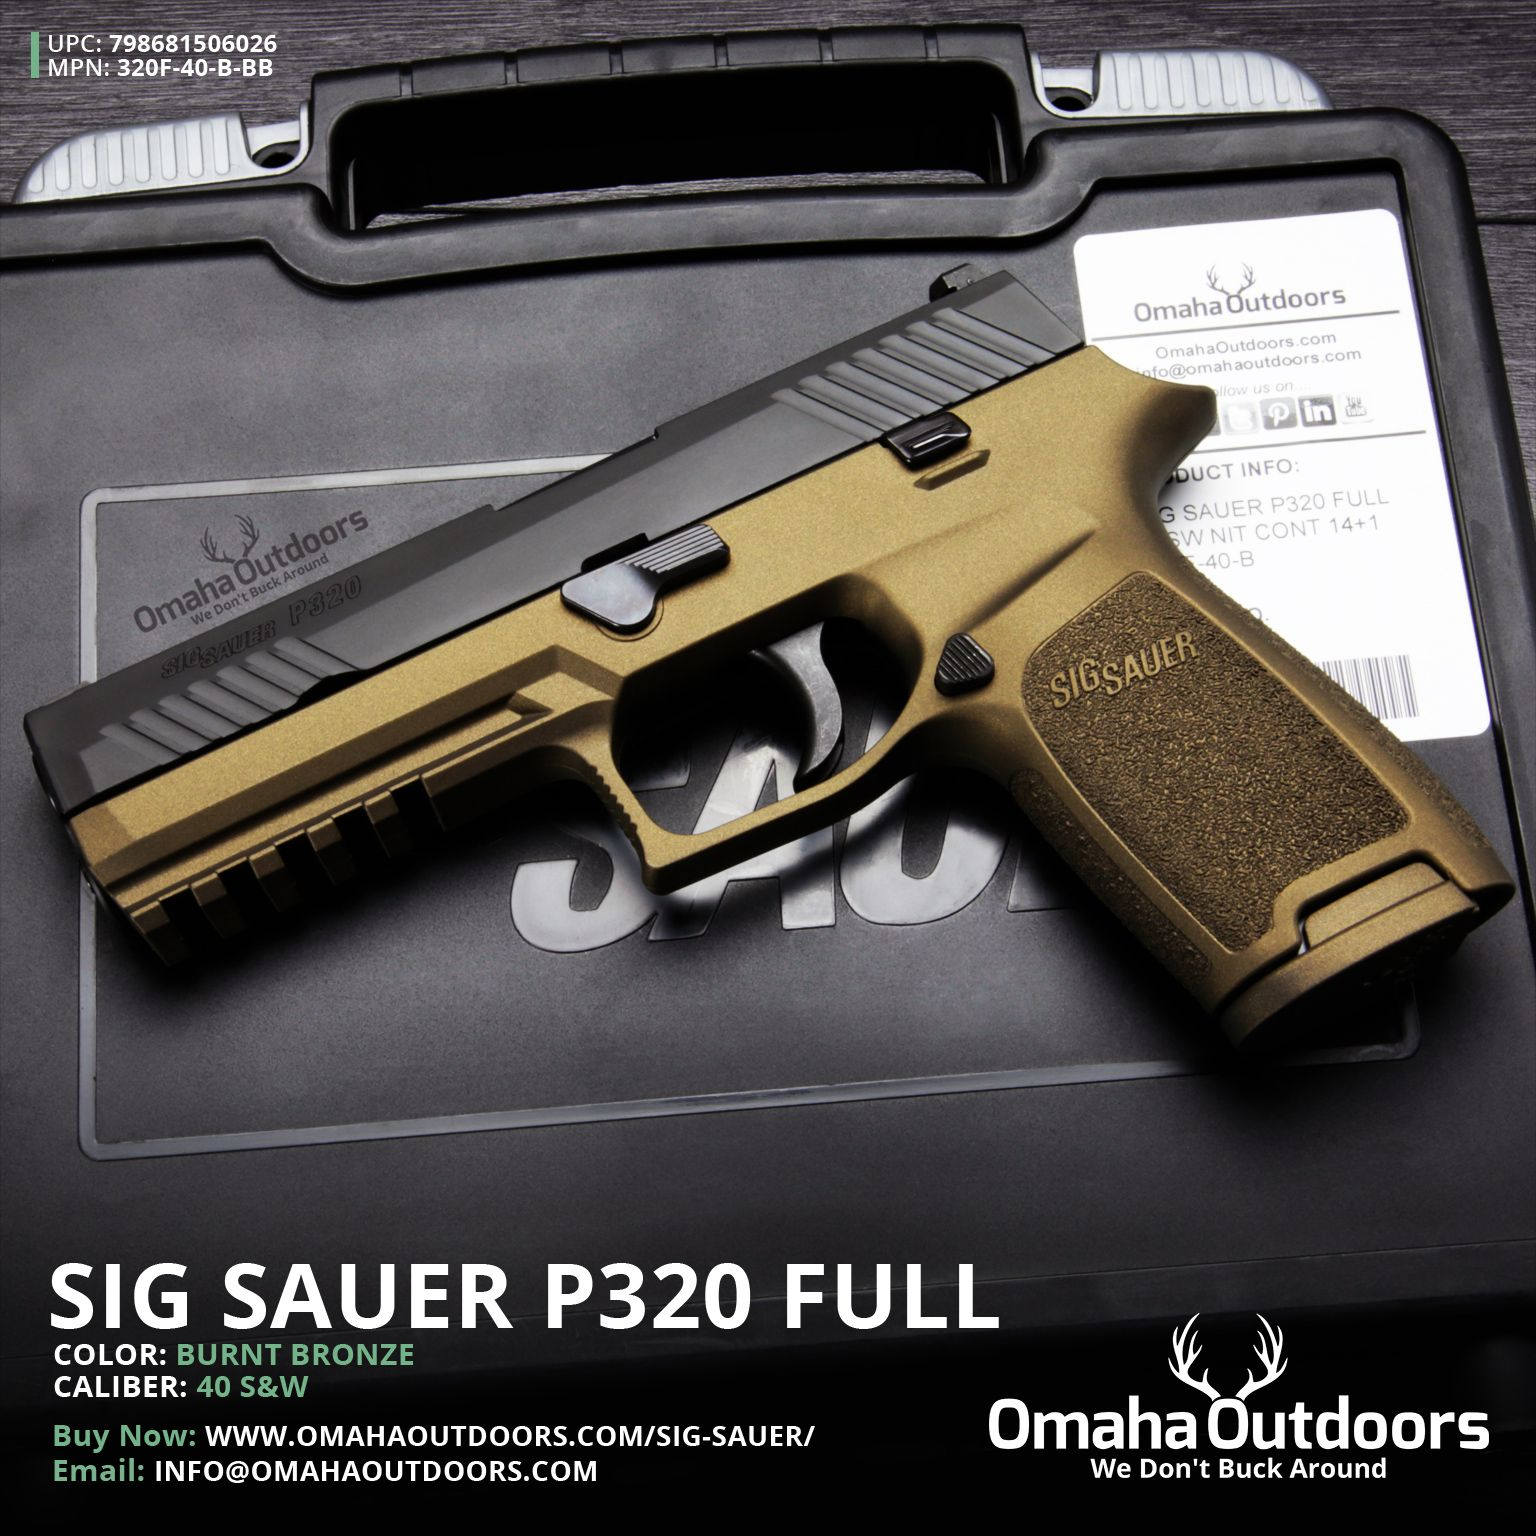 Sig Sauer P320 f/s with burnt bronze finish. Purty! | guns ...